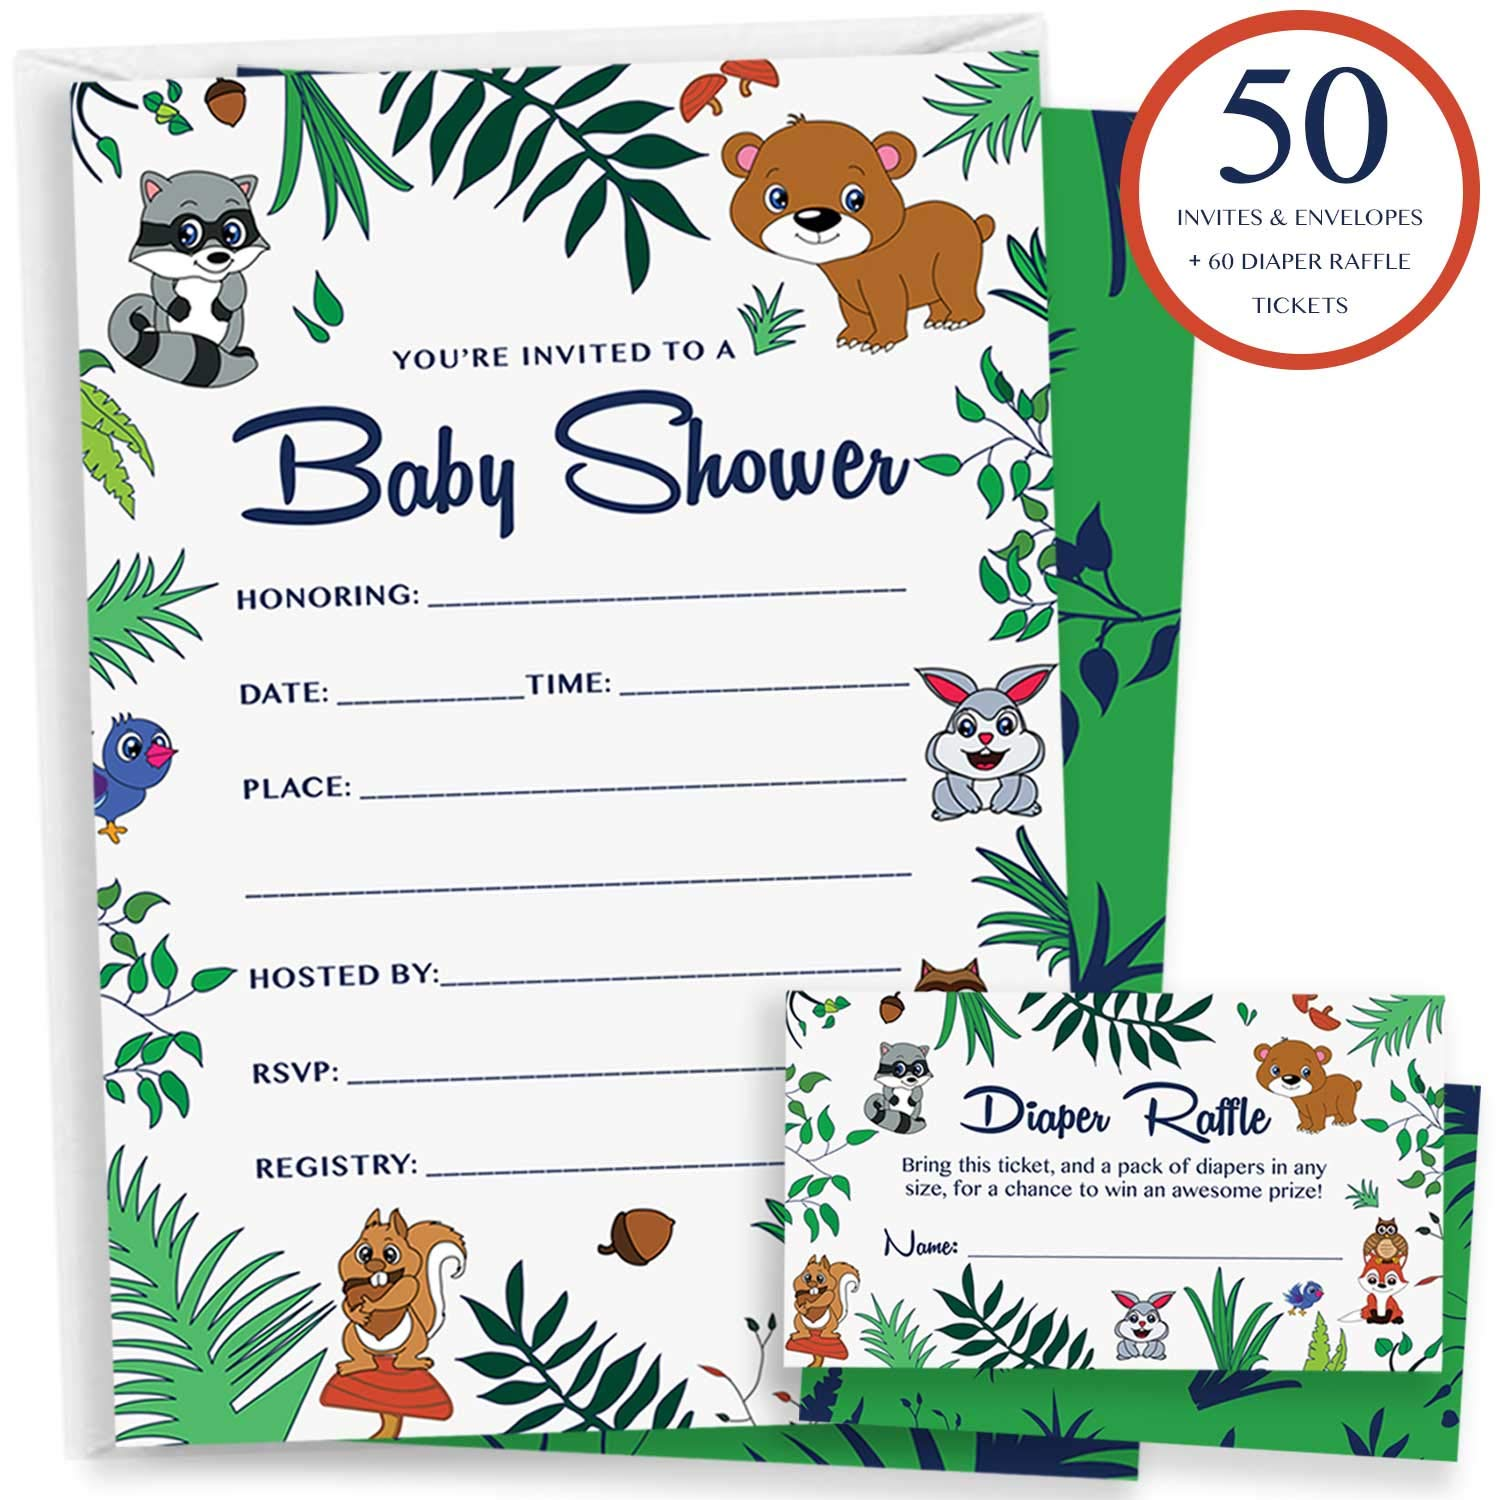 50 Woodland Baby Shower Invitations – 60 Diaper Raffle Cards Blank Envelopes